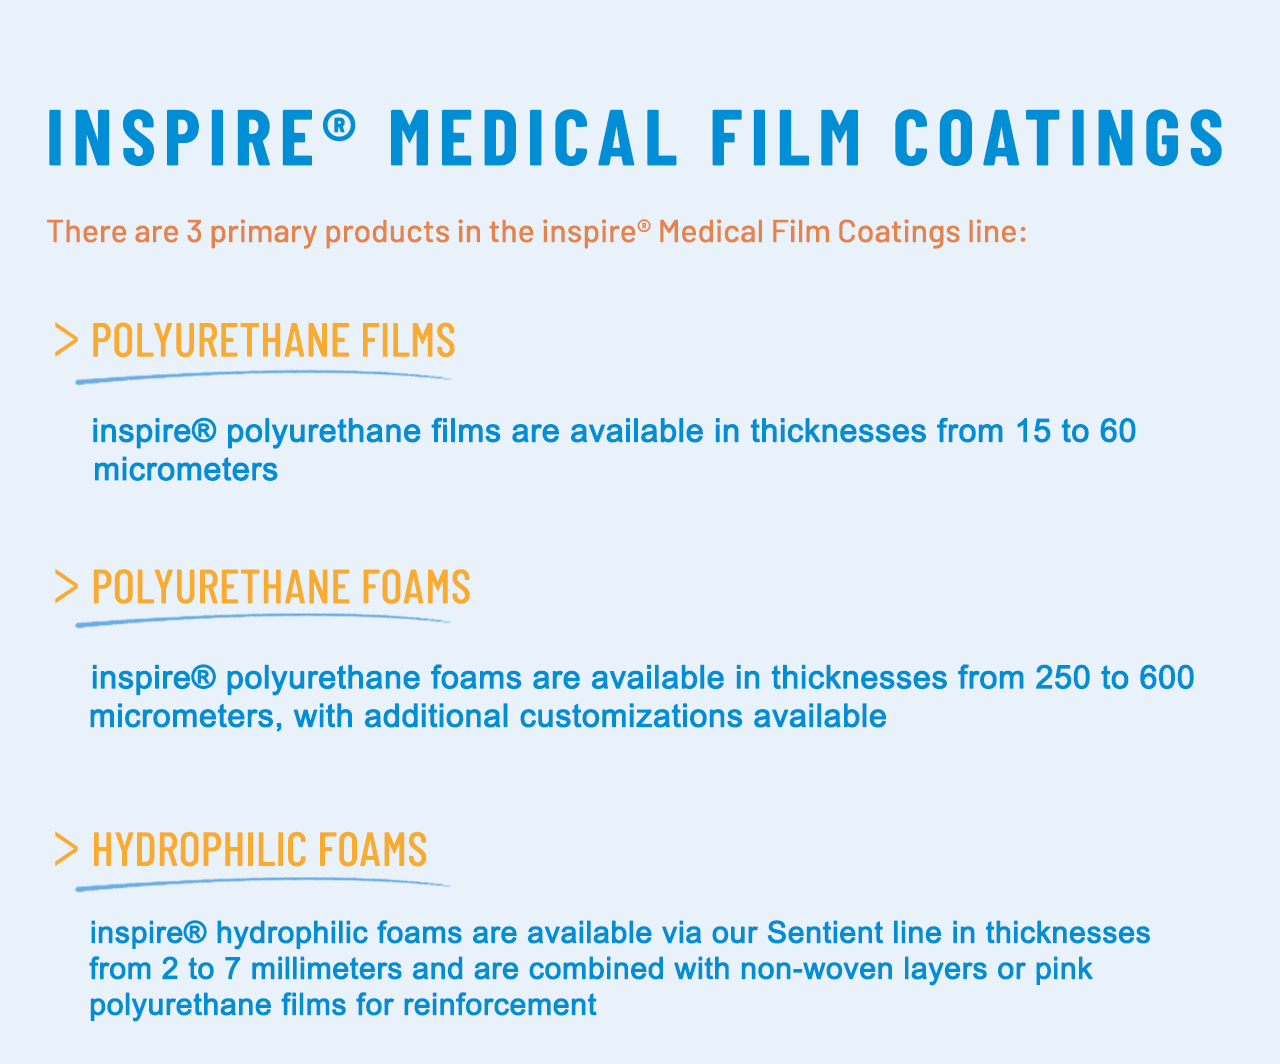 inspire® Medical Film Coatings - Transcontinental Advanced Coatings